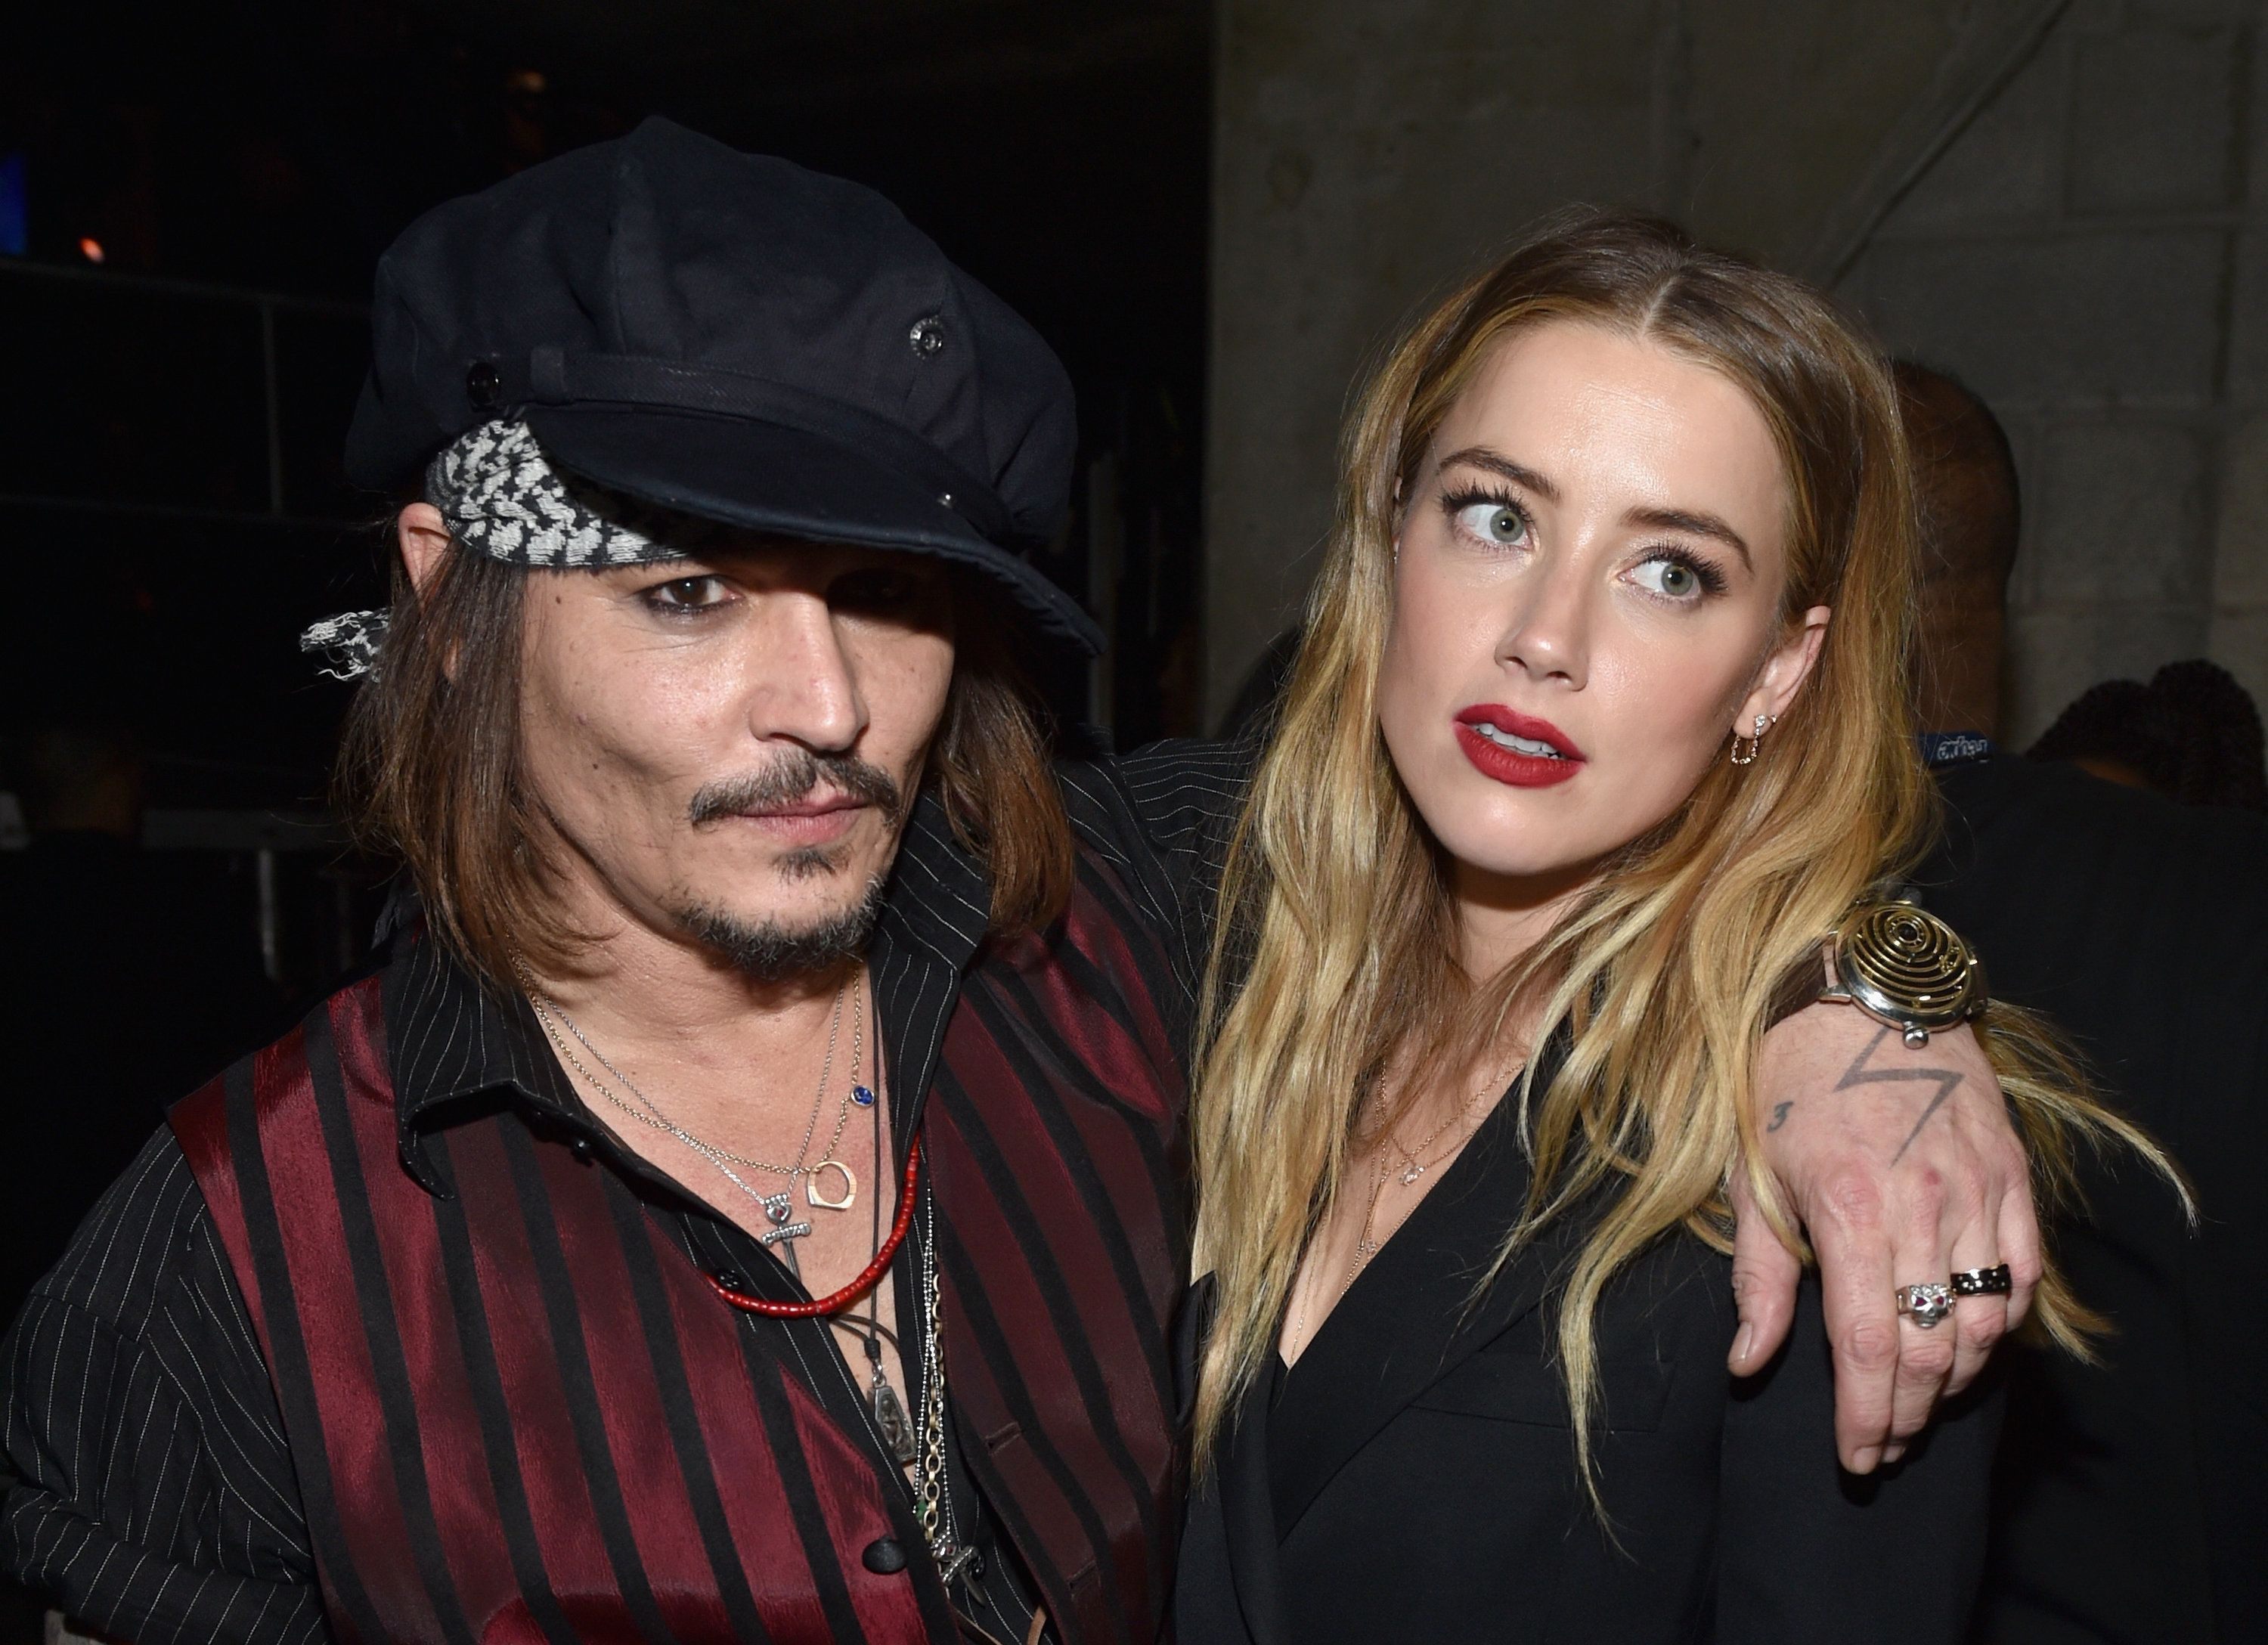 view beautiful images download images Images Court Documents Detail Johnny Depp's Alleged Abuse Against Amber Heard | HuffPost